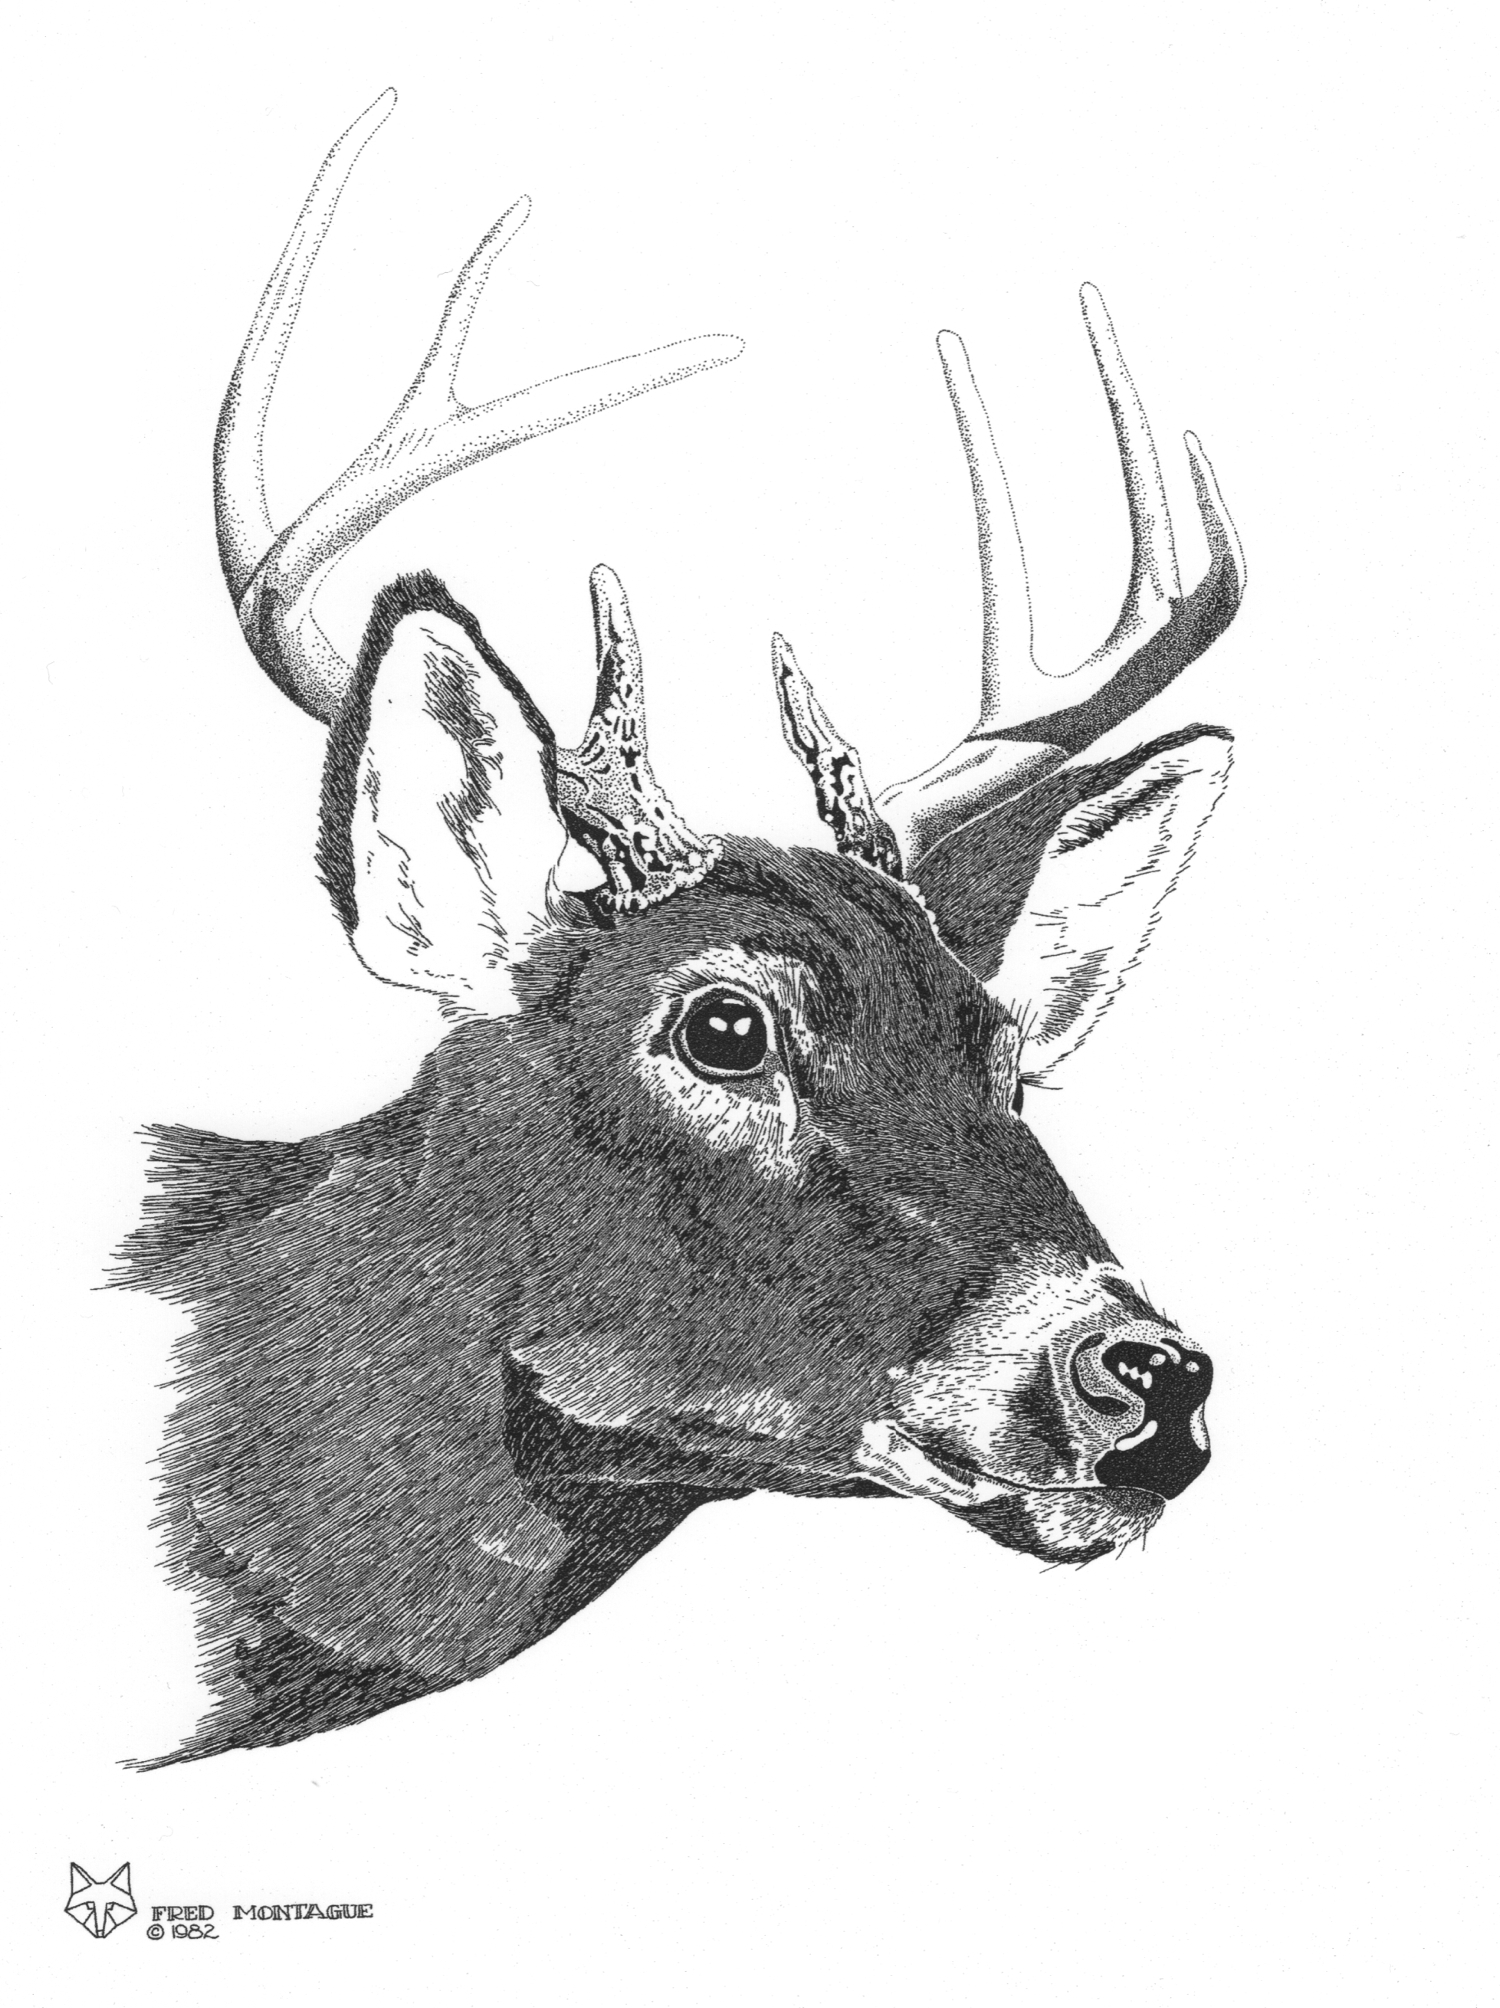 Whitetail Buck © Fred Montague  $65 • Photolithograph • image 14 x 17 matted 20 x 24   Edition size: 200 • status: available